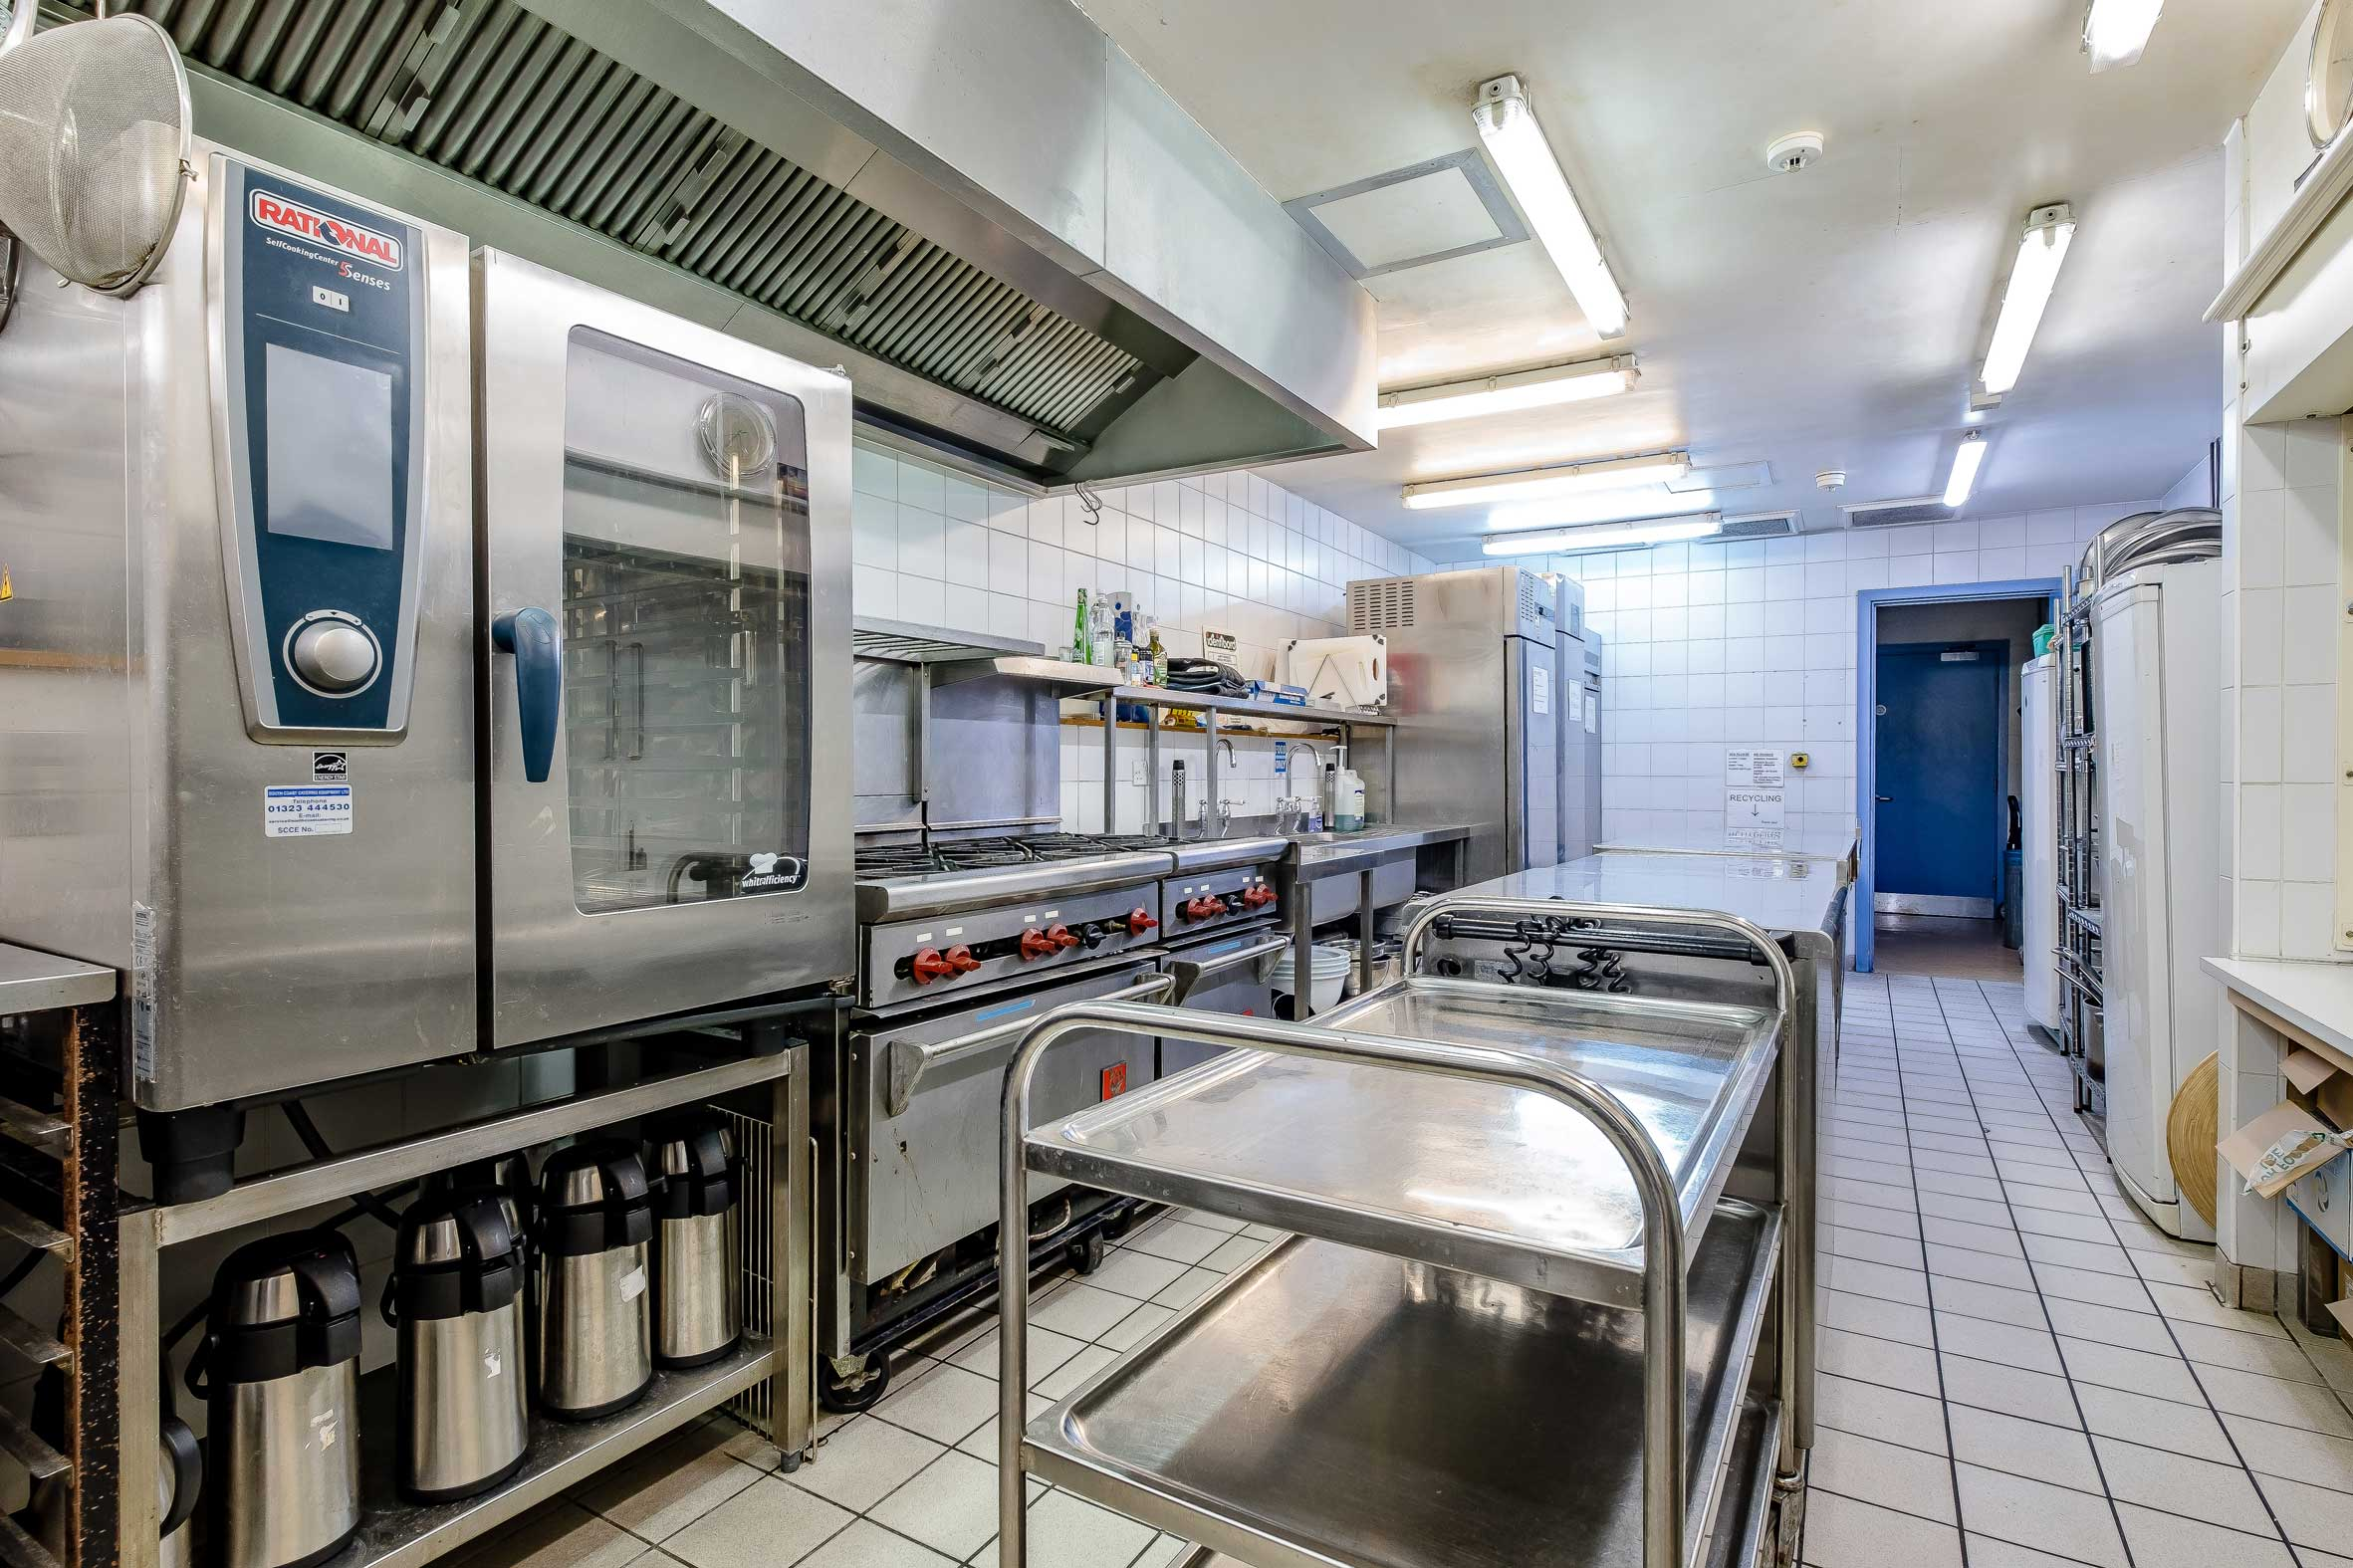 Fully commercial kitchen with ovens, hobs , fridge, freezer and dishwasher